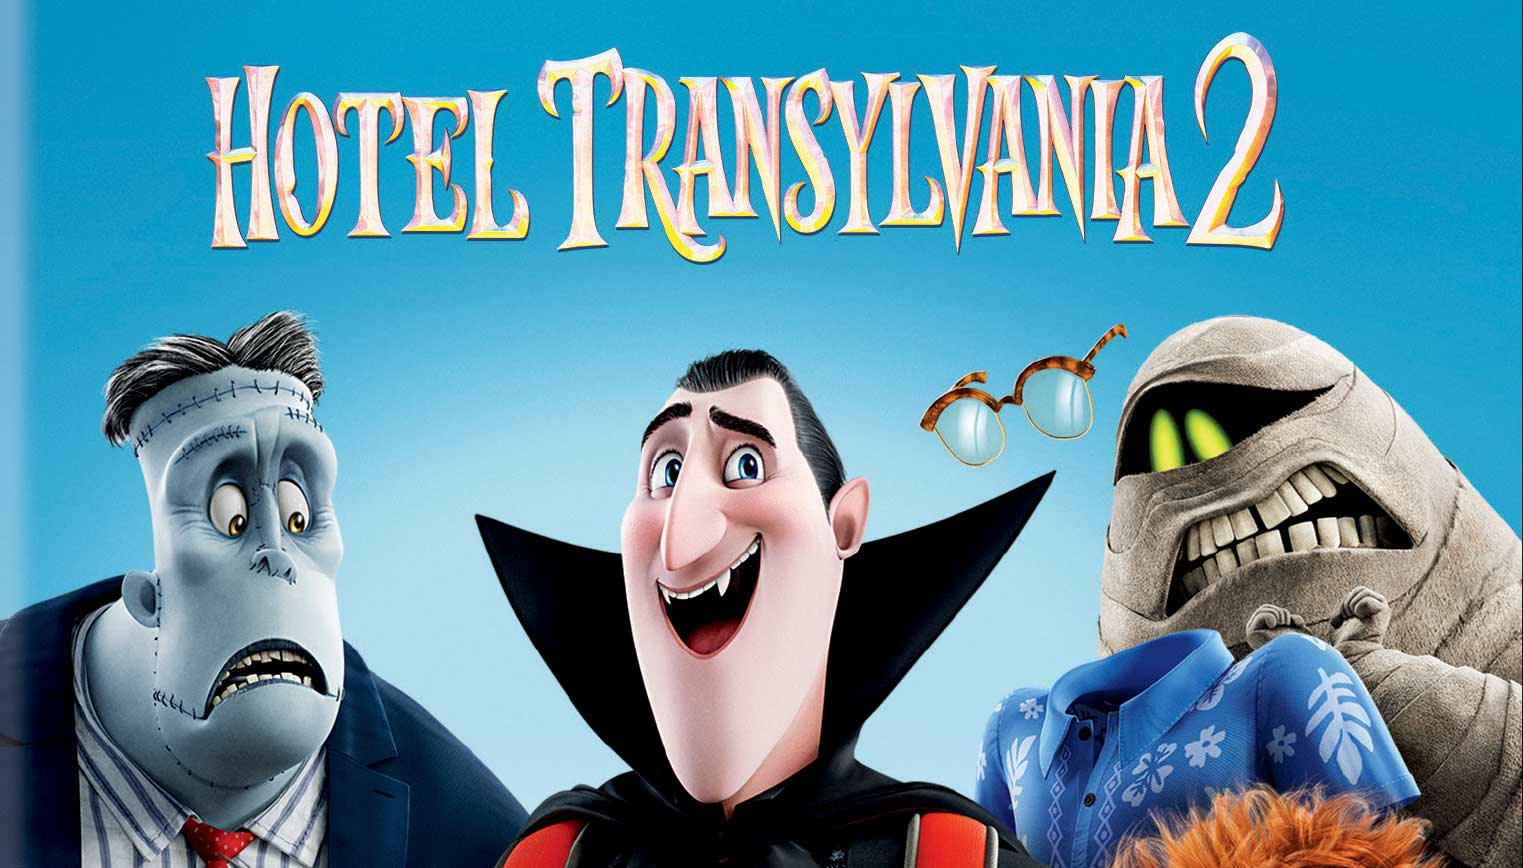 Hotel Transylvania Colouring Page Printable Mummy Blog Blogger NZ New Zealand